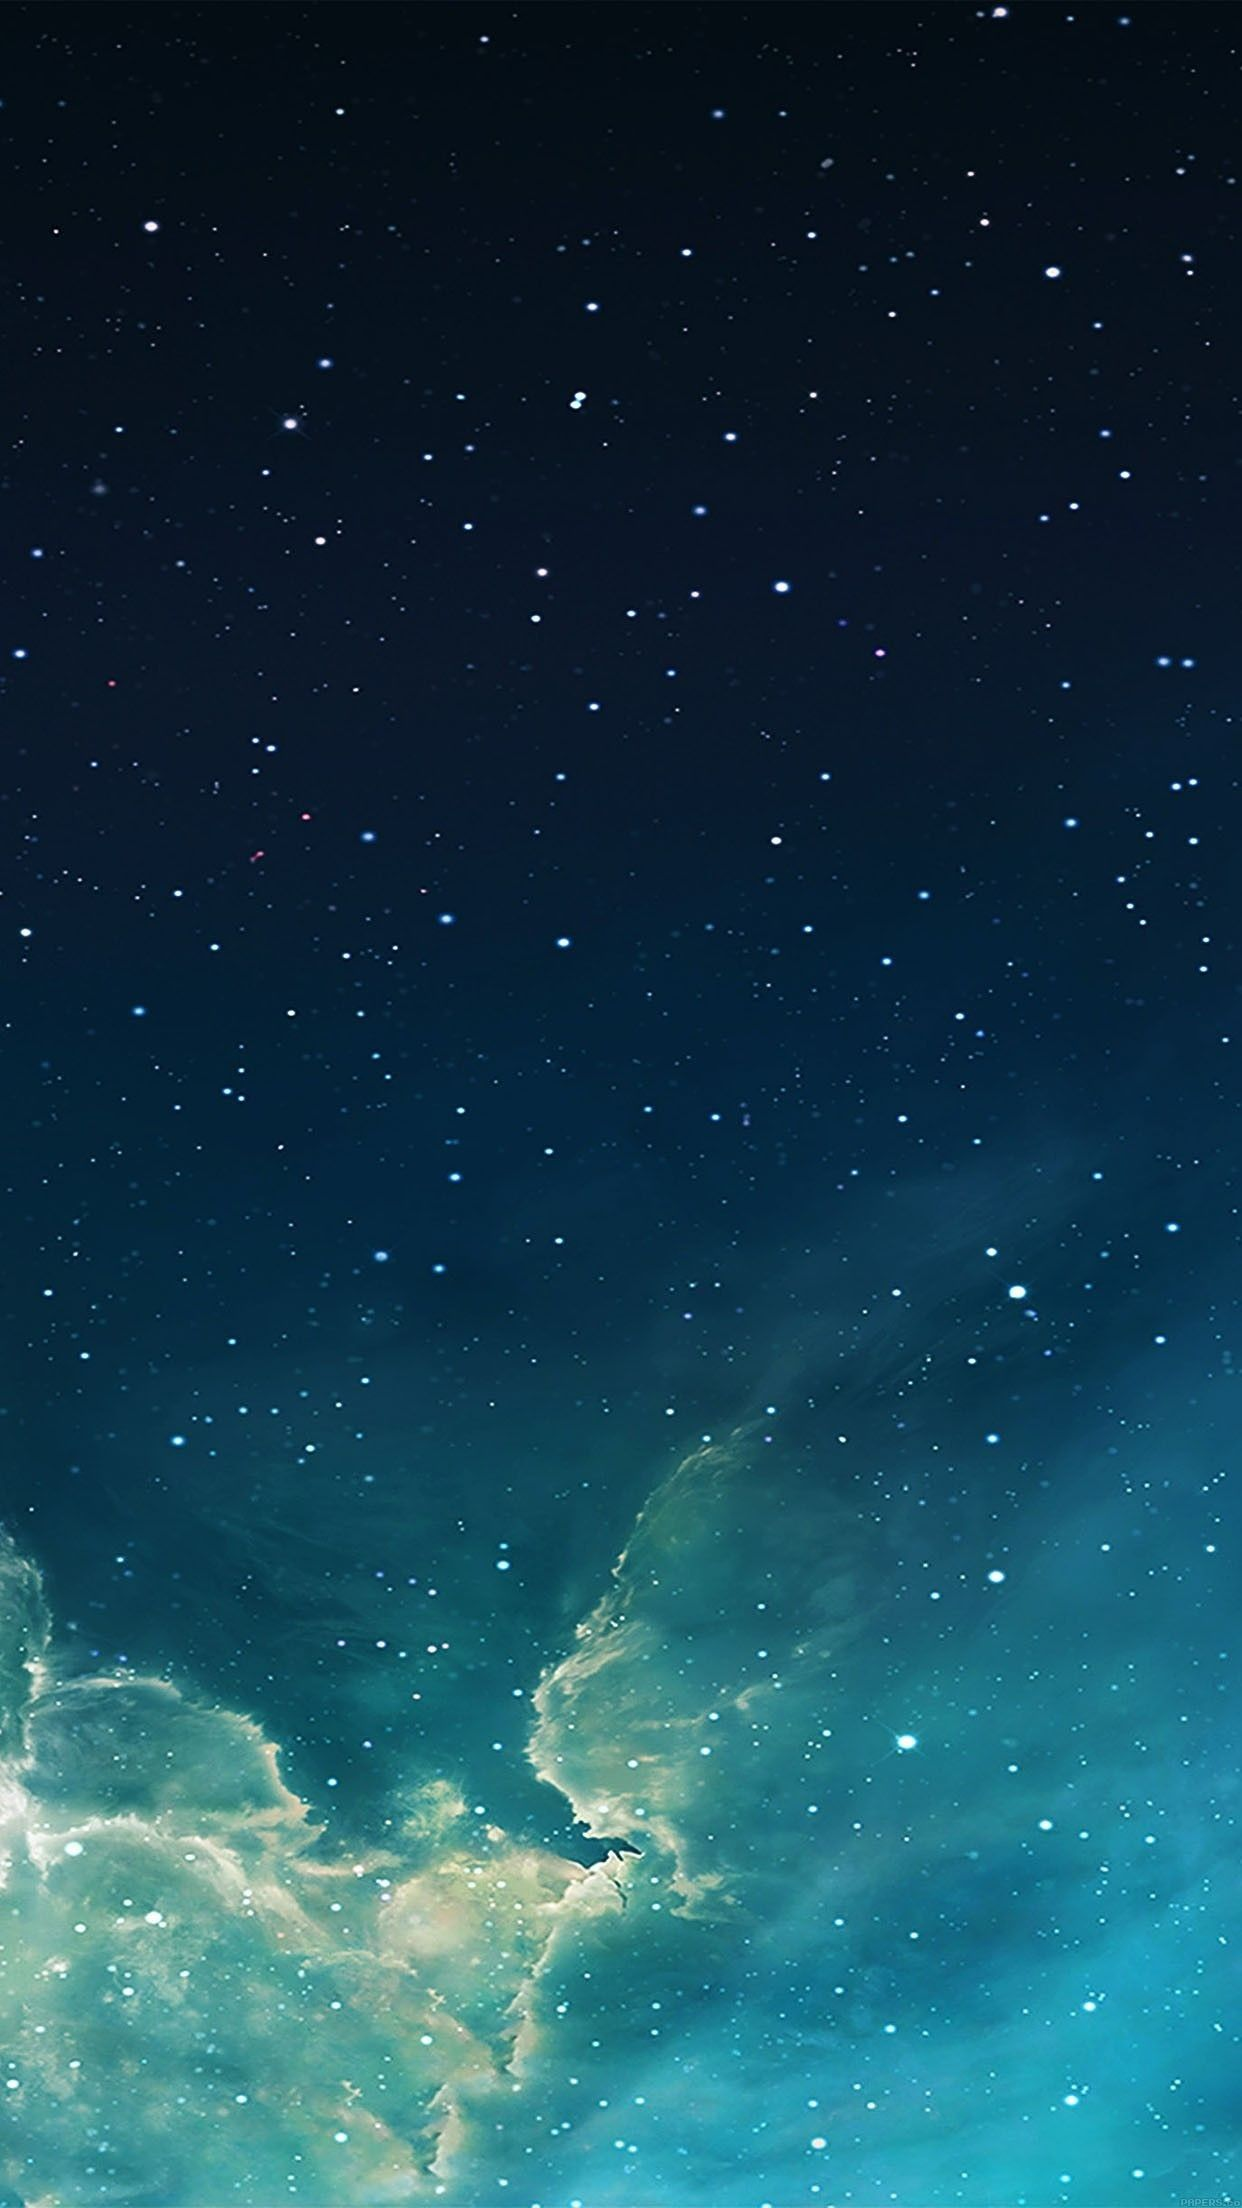 Stars Iphone Wallpapers Top Free Stars Iphone Backgrounds Wallpaperaccess